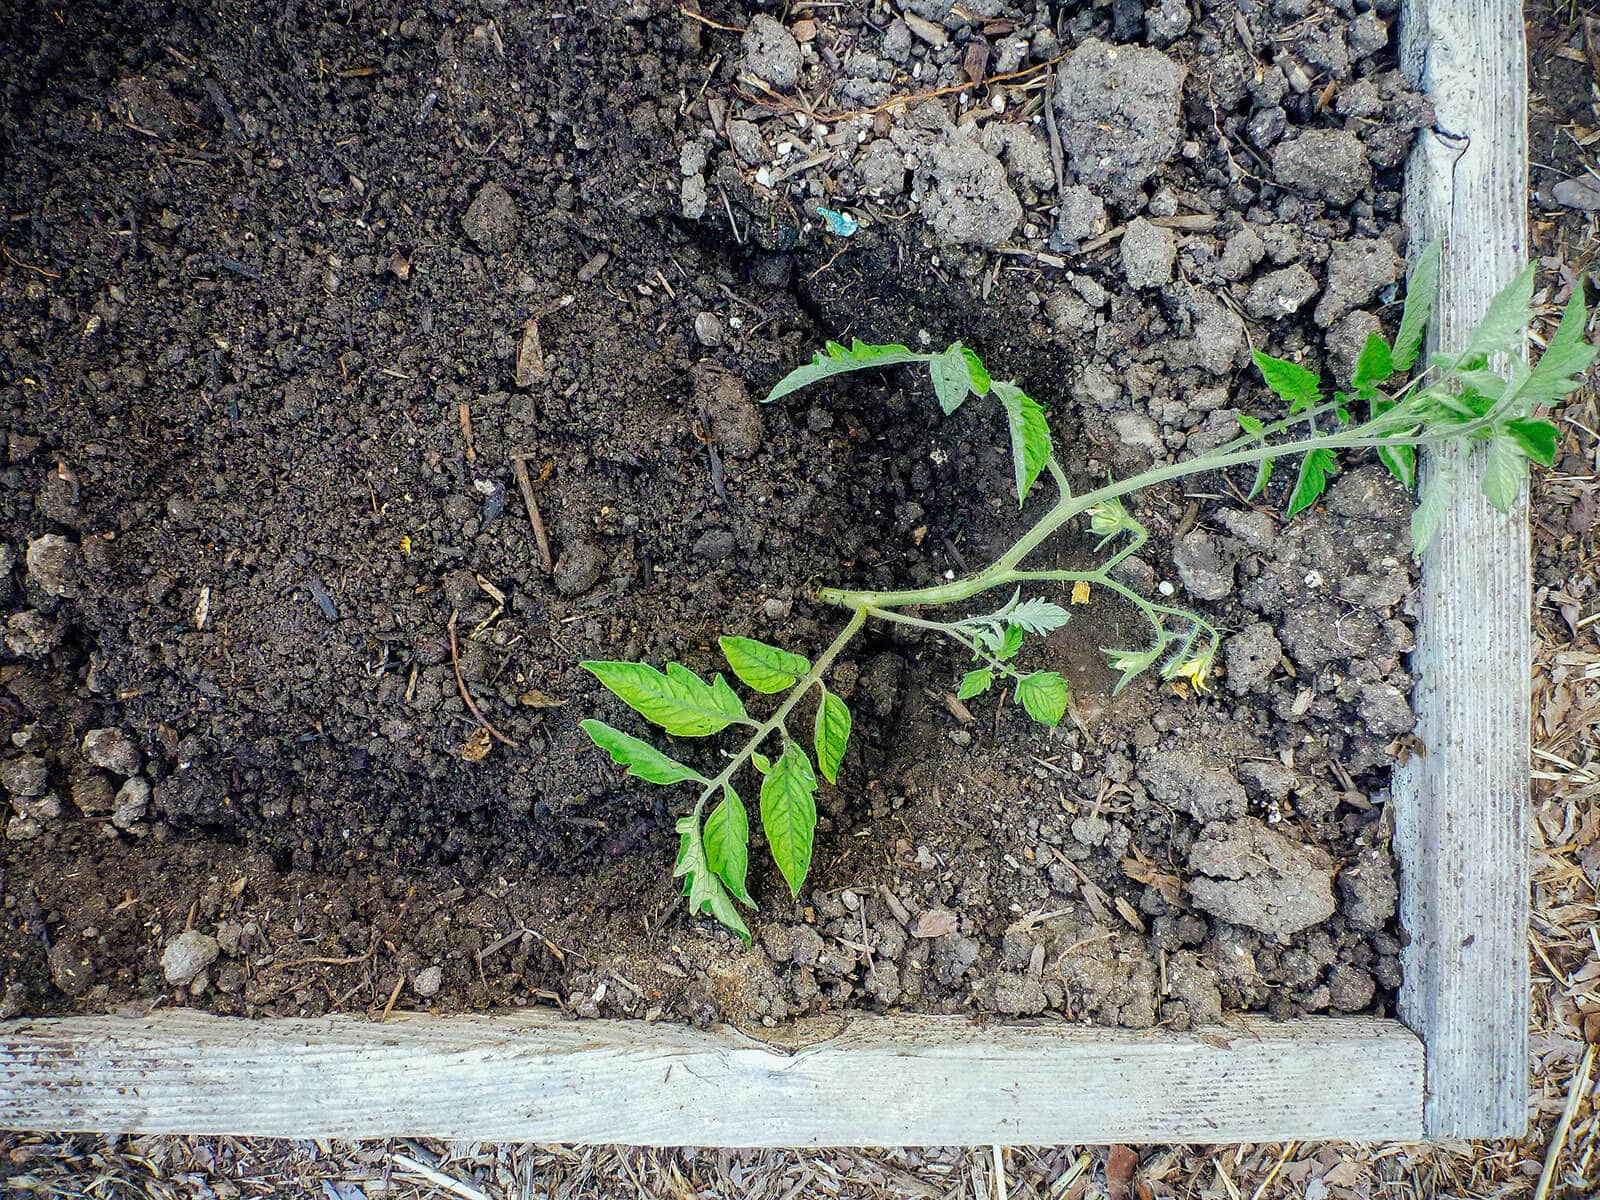 Fill the trench with soil, covering the root ball and the bottom of the stem but leaving the branches and leaves exposed